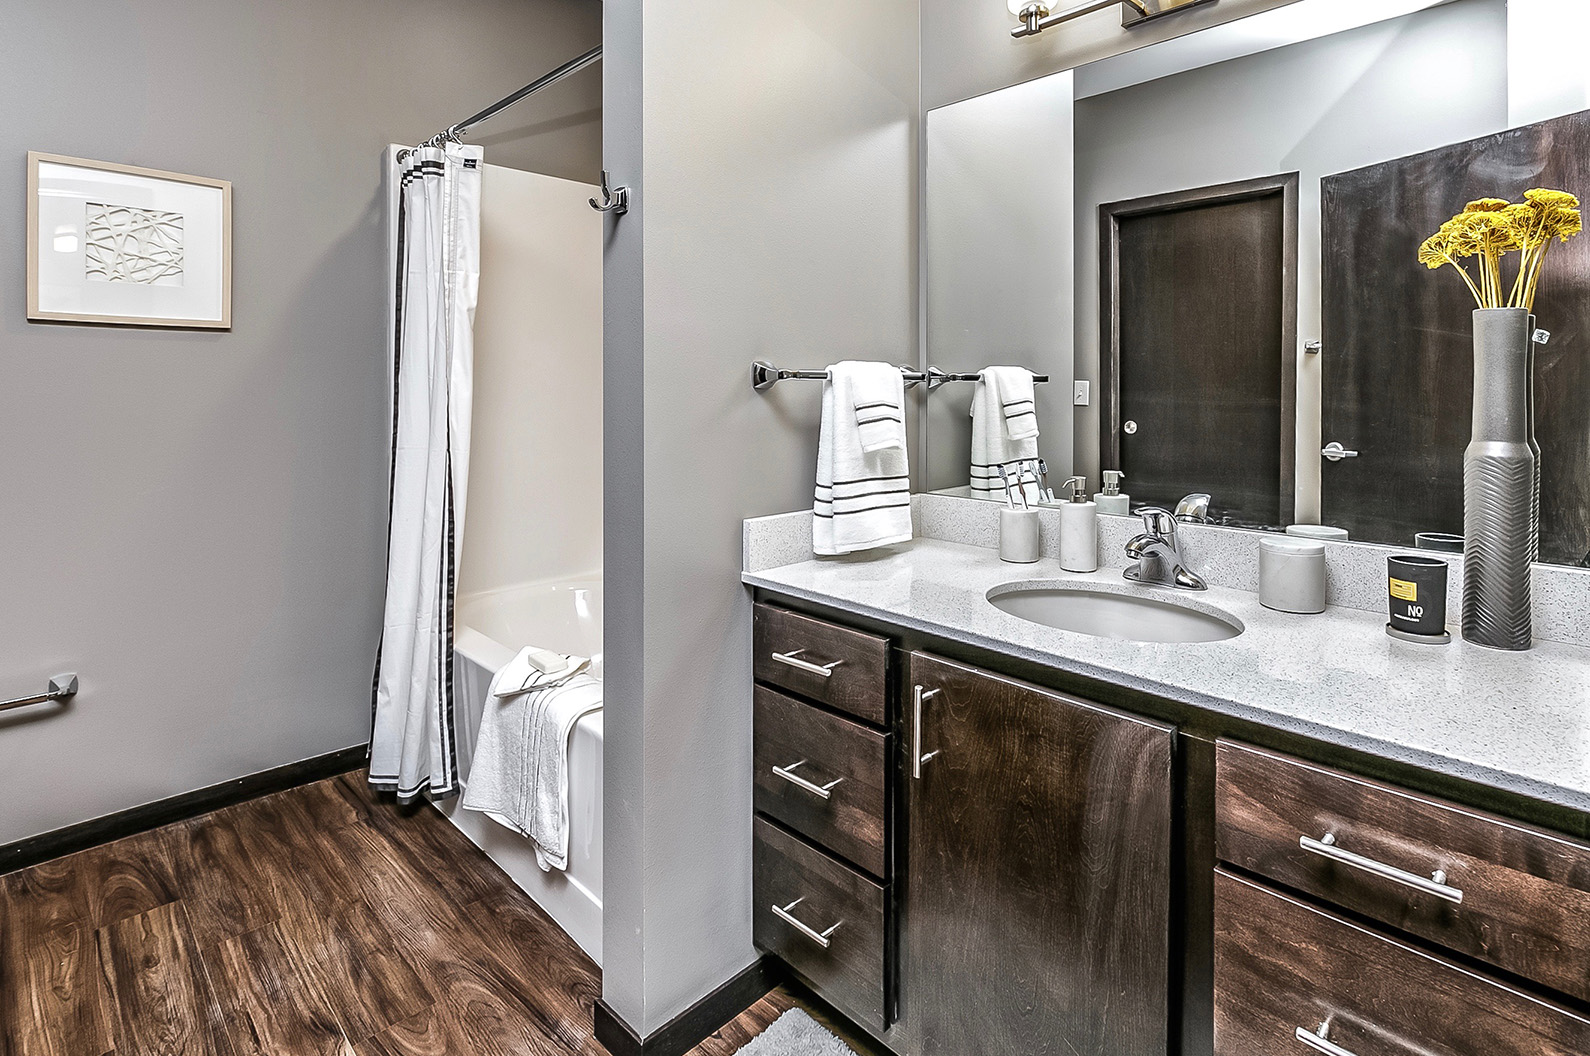 Solid Cultured Marble Bathroom Counter Tops at Capitol District, Omaha, NE,68102